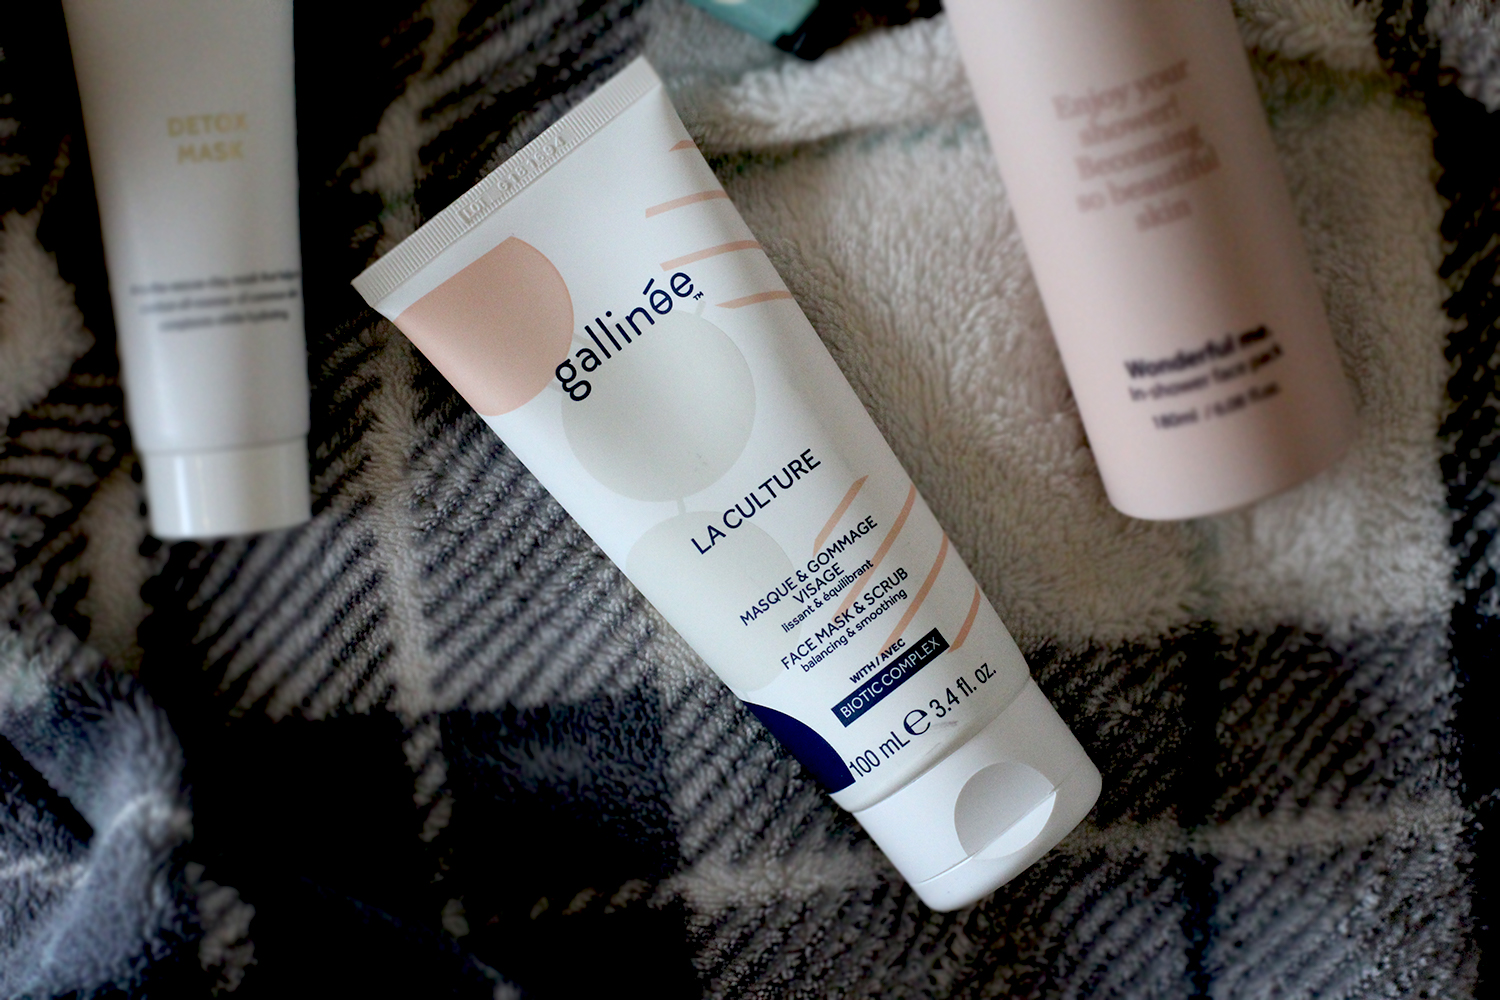 Four Amazing Face Masks From Brands You May Not Have Heard Of | Gallinee face mask and scrub